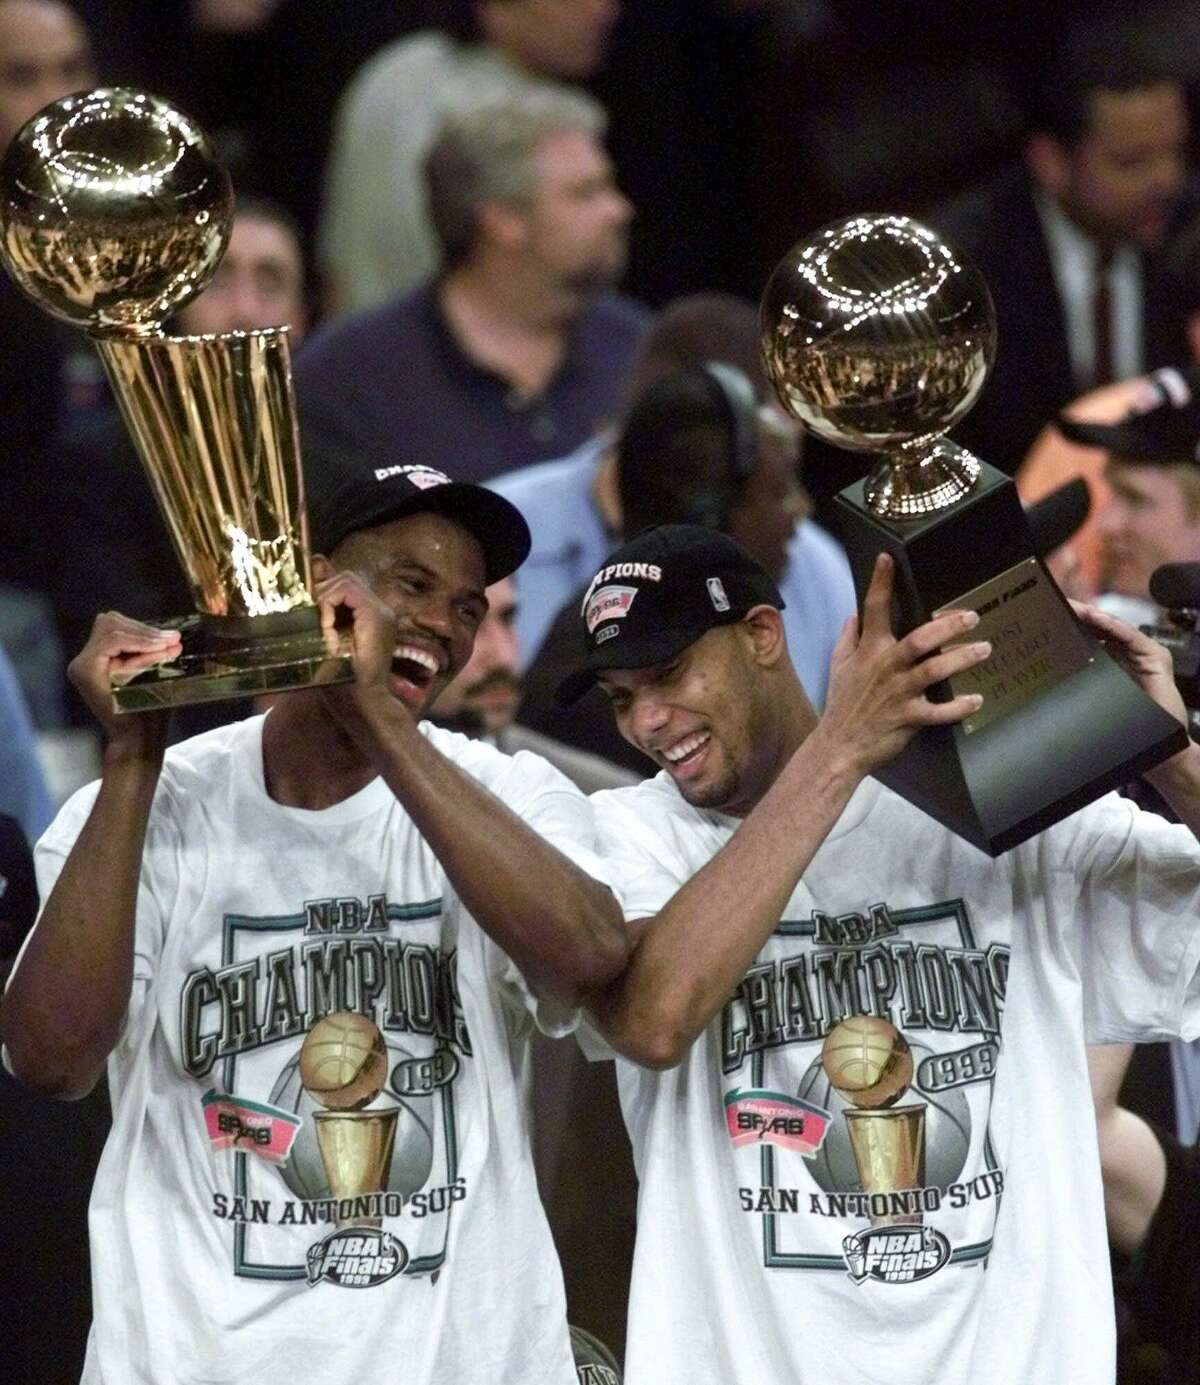 David Robinson, left, holds the NBA championship trophy as Tim Duncan holds the Most Valuable Player trophy after defeating the New York Knicks 78-77 in Game 5 of the 1999 NBA Finals. It was just the beginning of an incredible run.